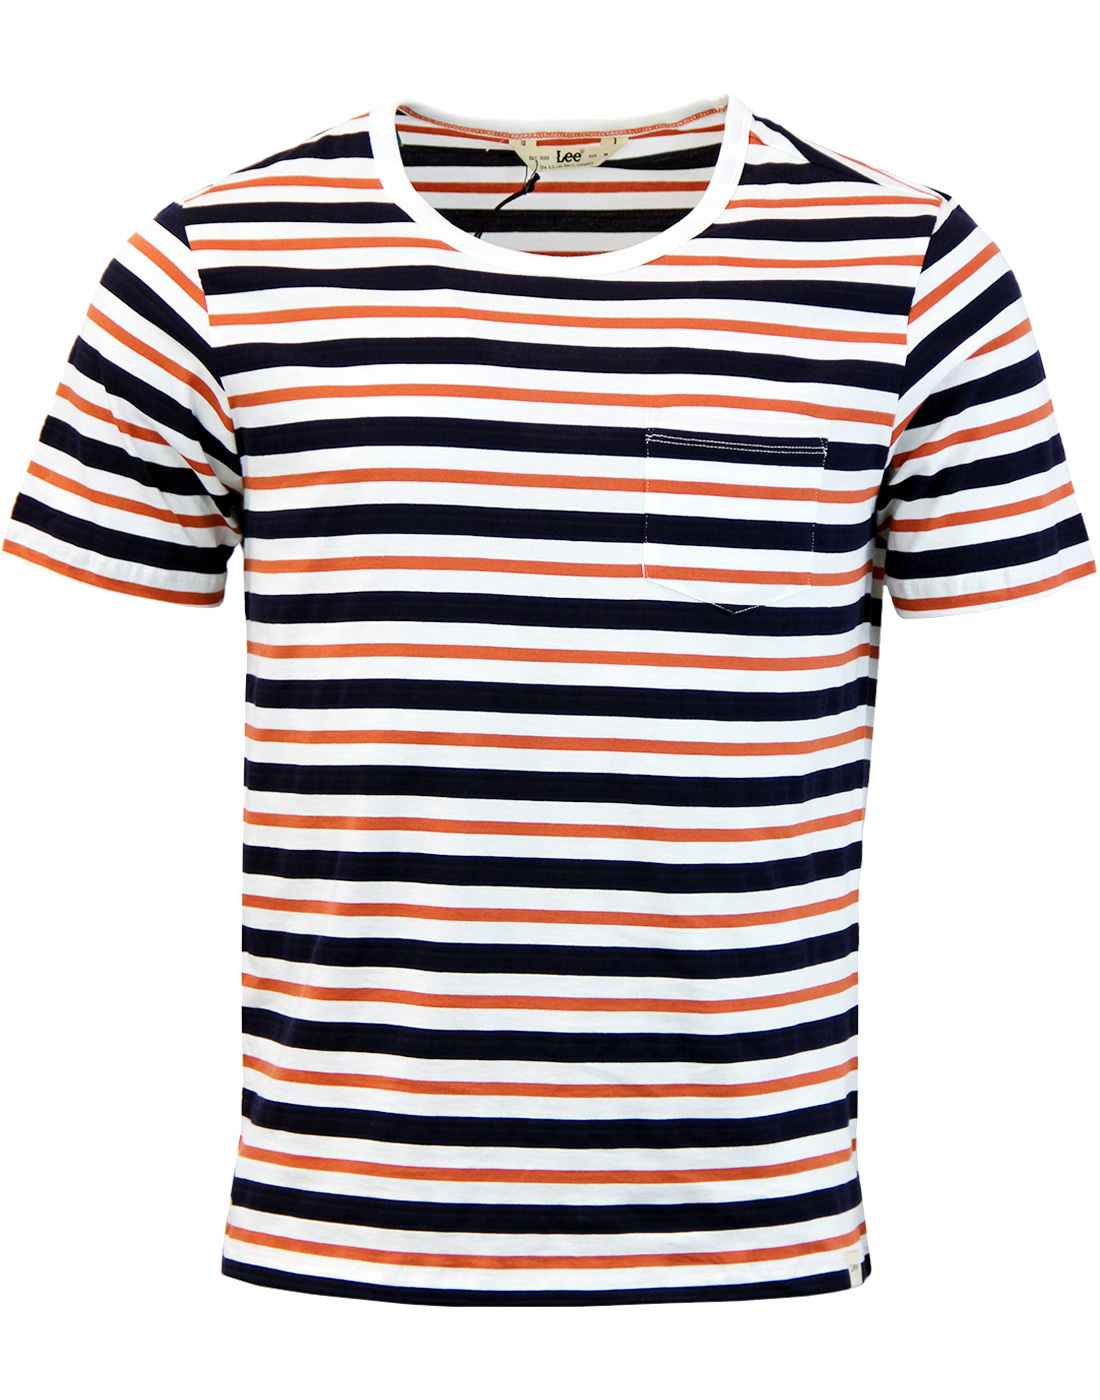 LEE Retro Indie Texture Stripe Crew Neck T-Shirt